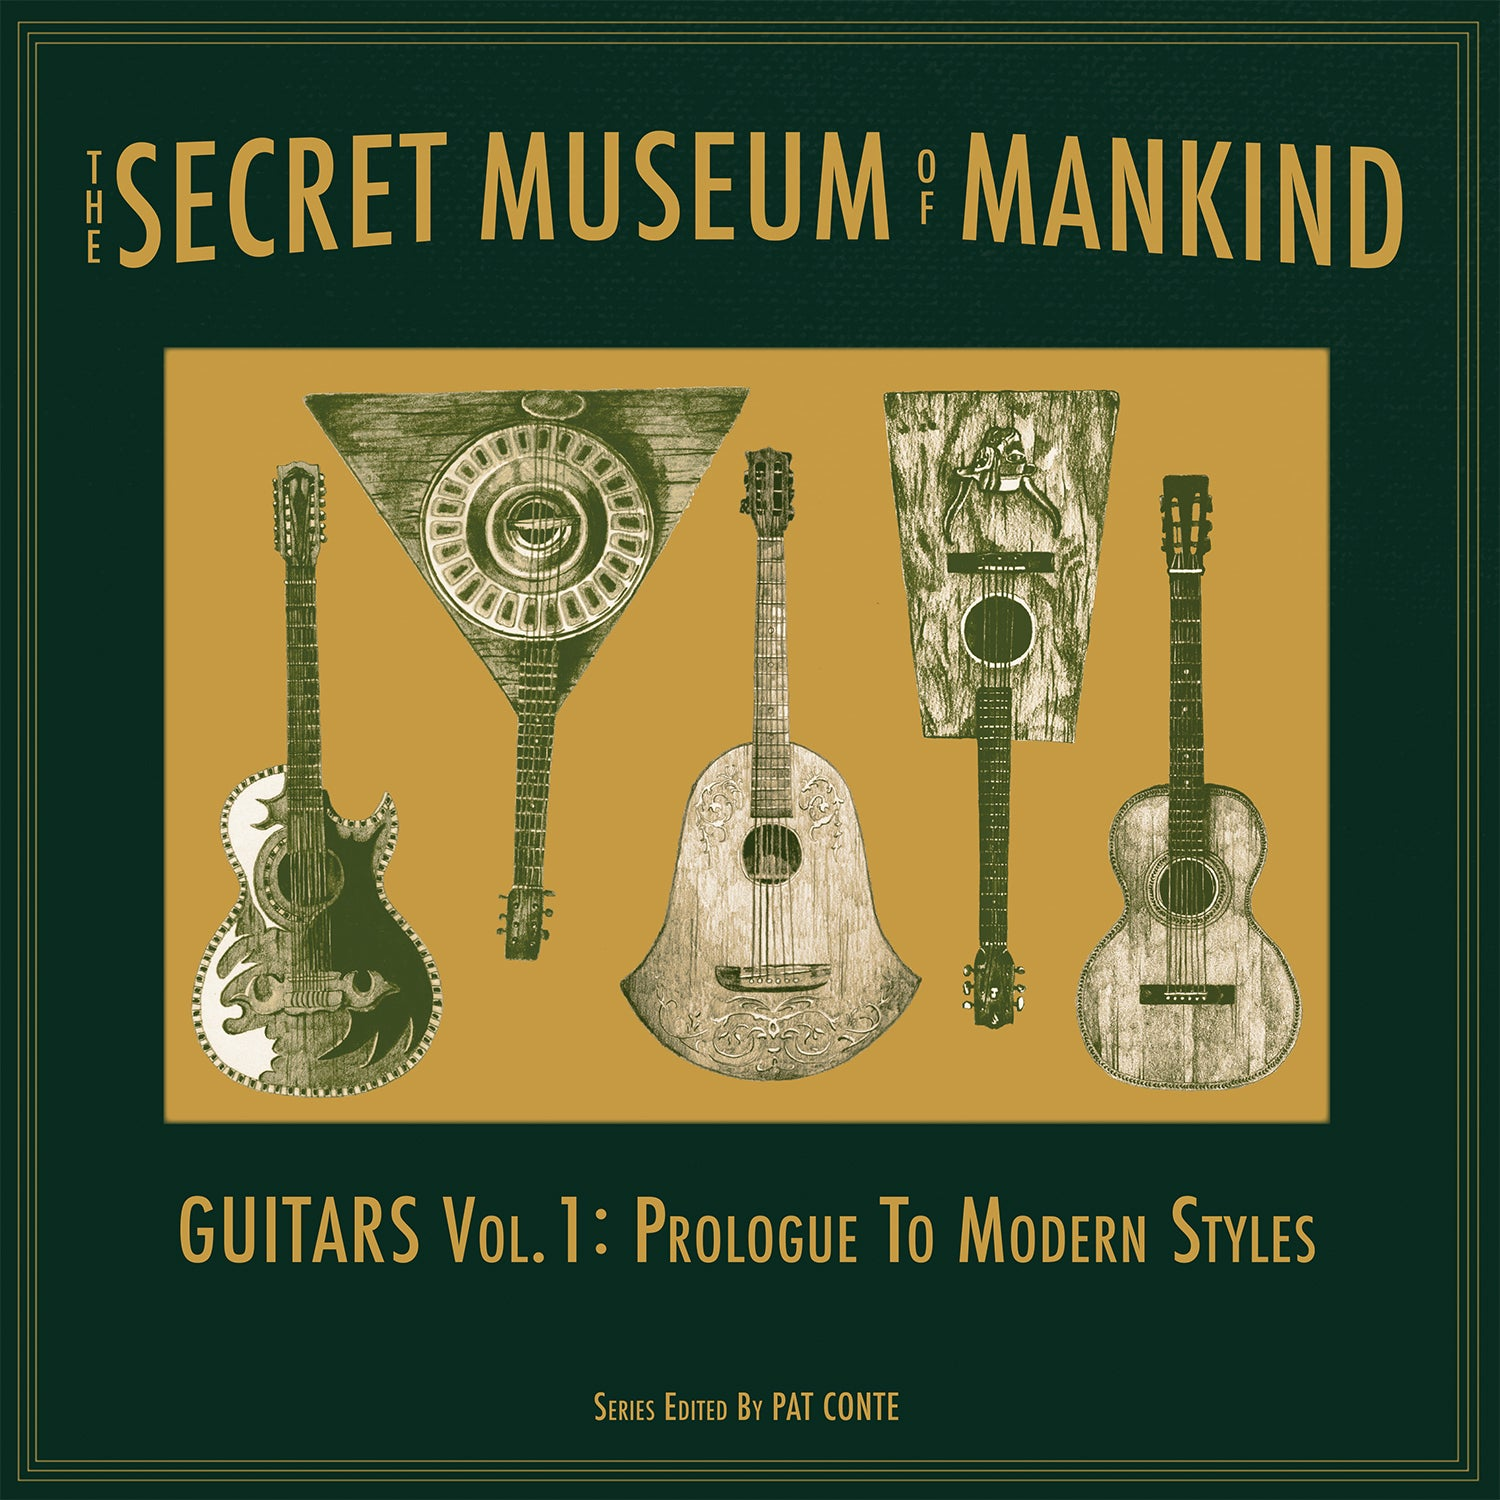 V/A - The Secret Museum of Mankind - Guitars Vol. 1: Prologue to Modern Styles